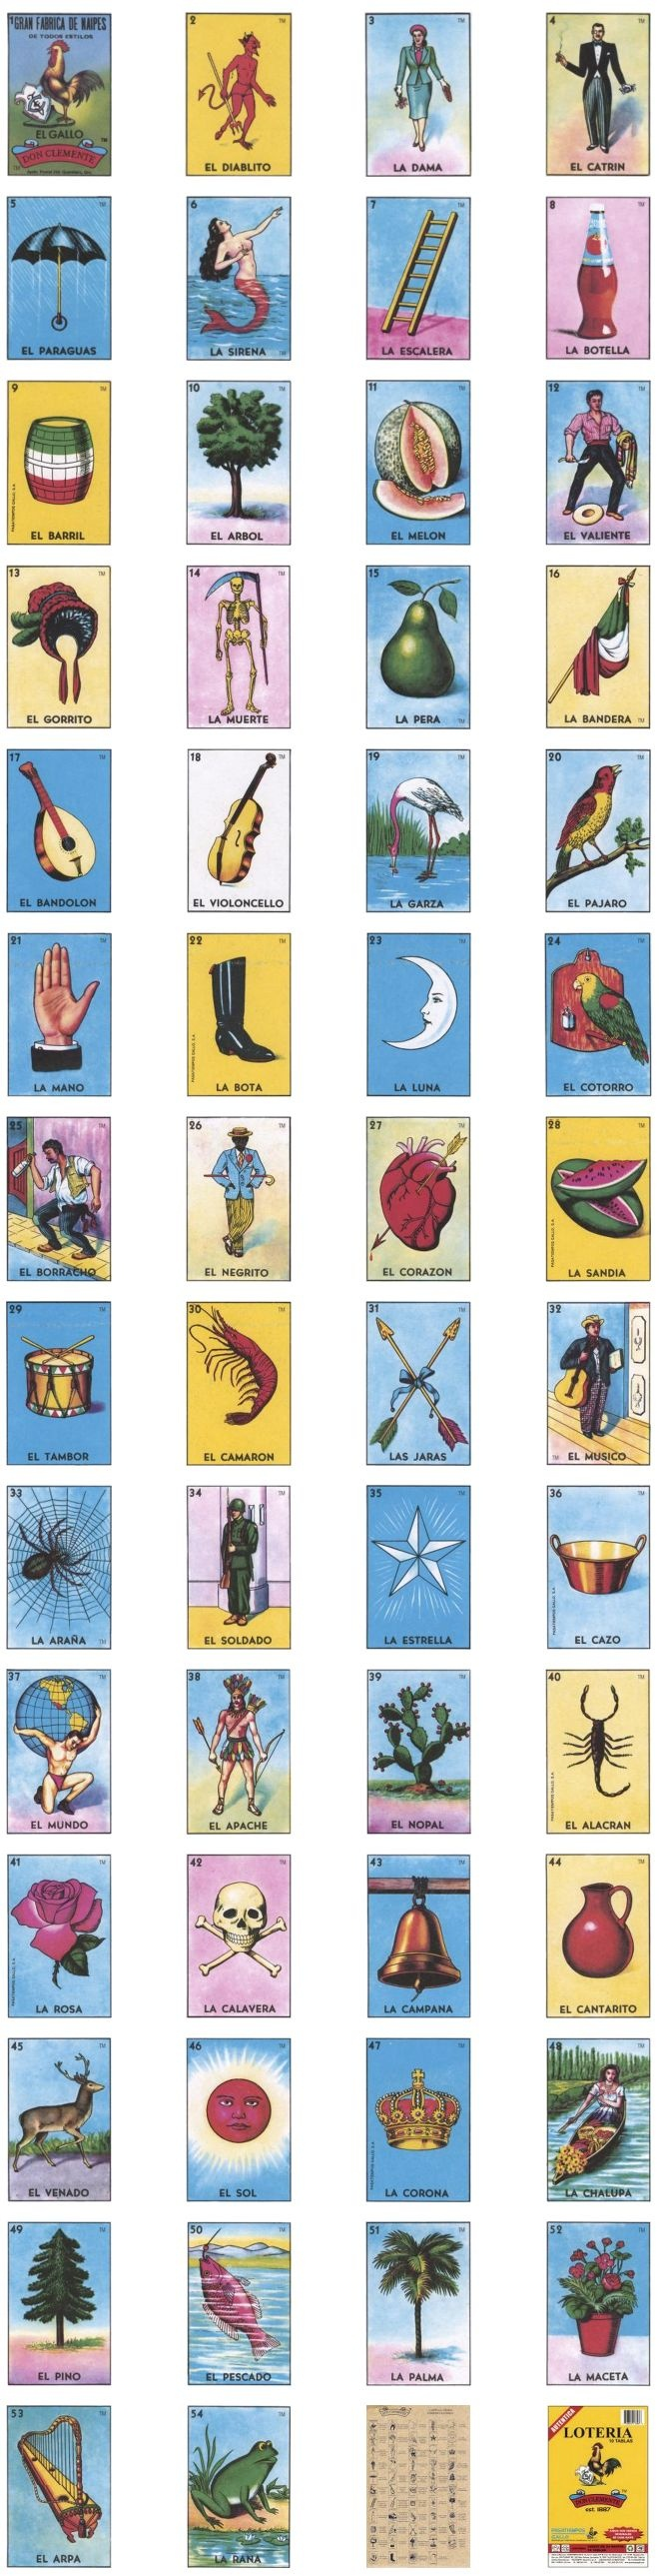 Loteria Cards Printable (91+ Images In Collection) Page 1 - Loteria Printable Cards Free